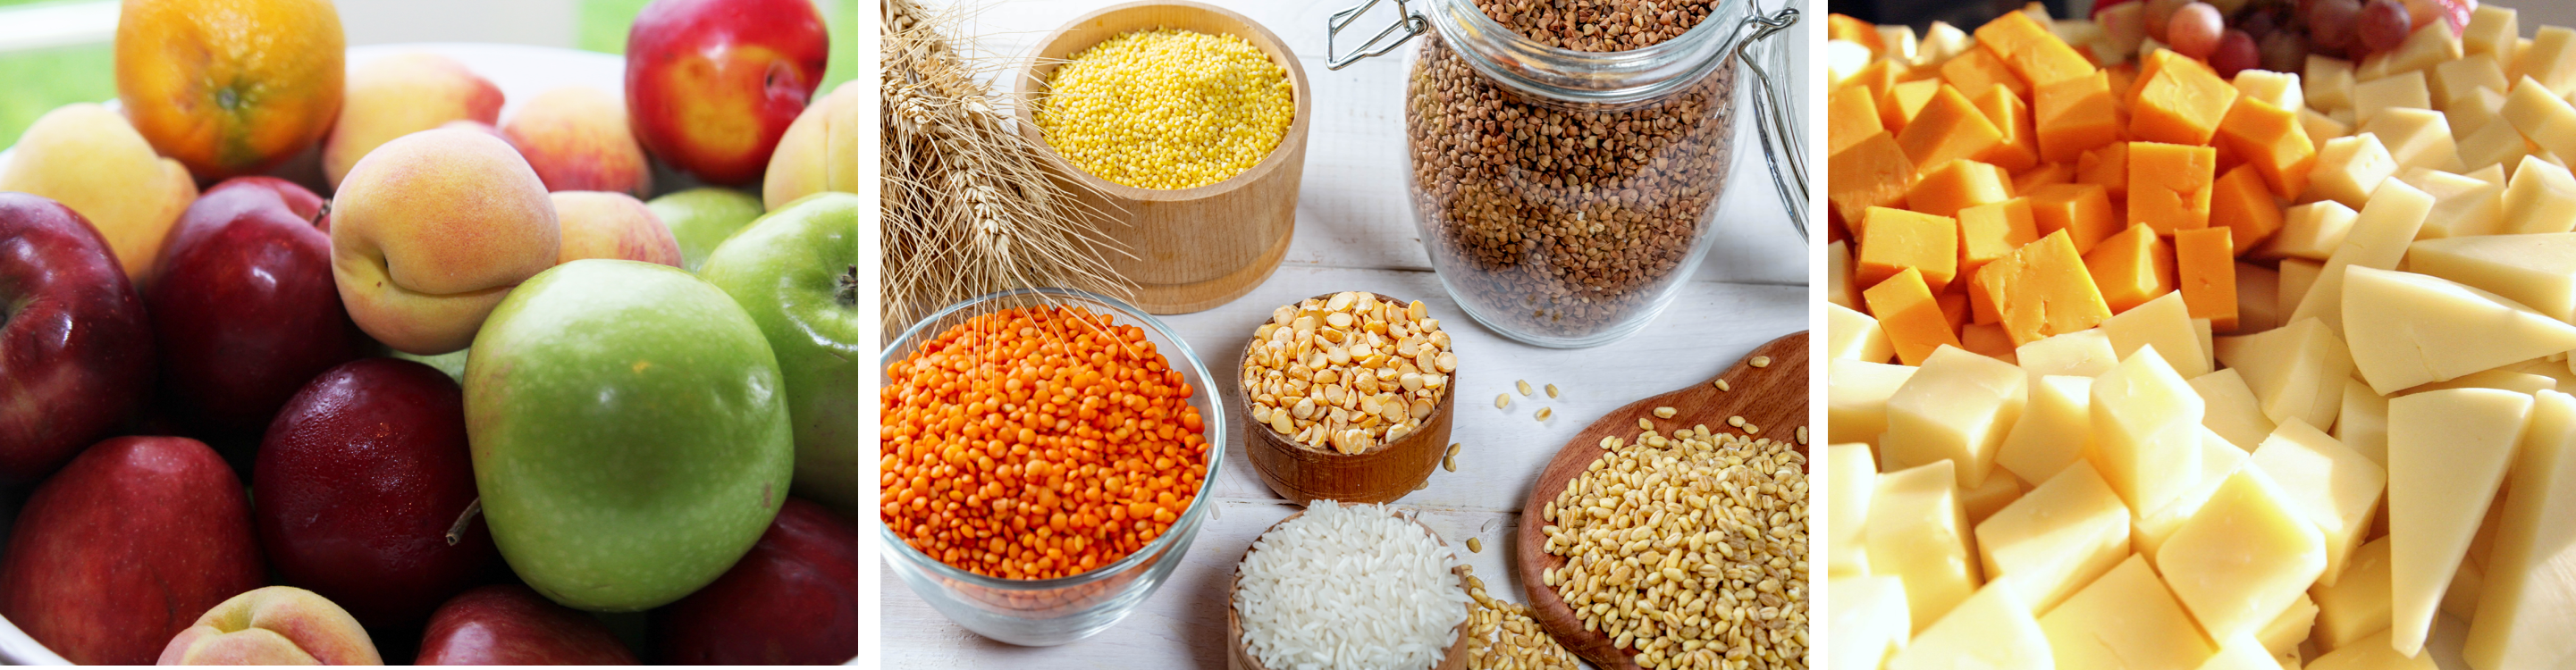 3 photos of whole food sources of carbohydrates, from left to right: a fruit bowl with apples, peaches, and oranges; an assortment of grains and legumes, including lentils, rice, and peanuts; and an assortment of cheeses cut into small pieces.